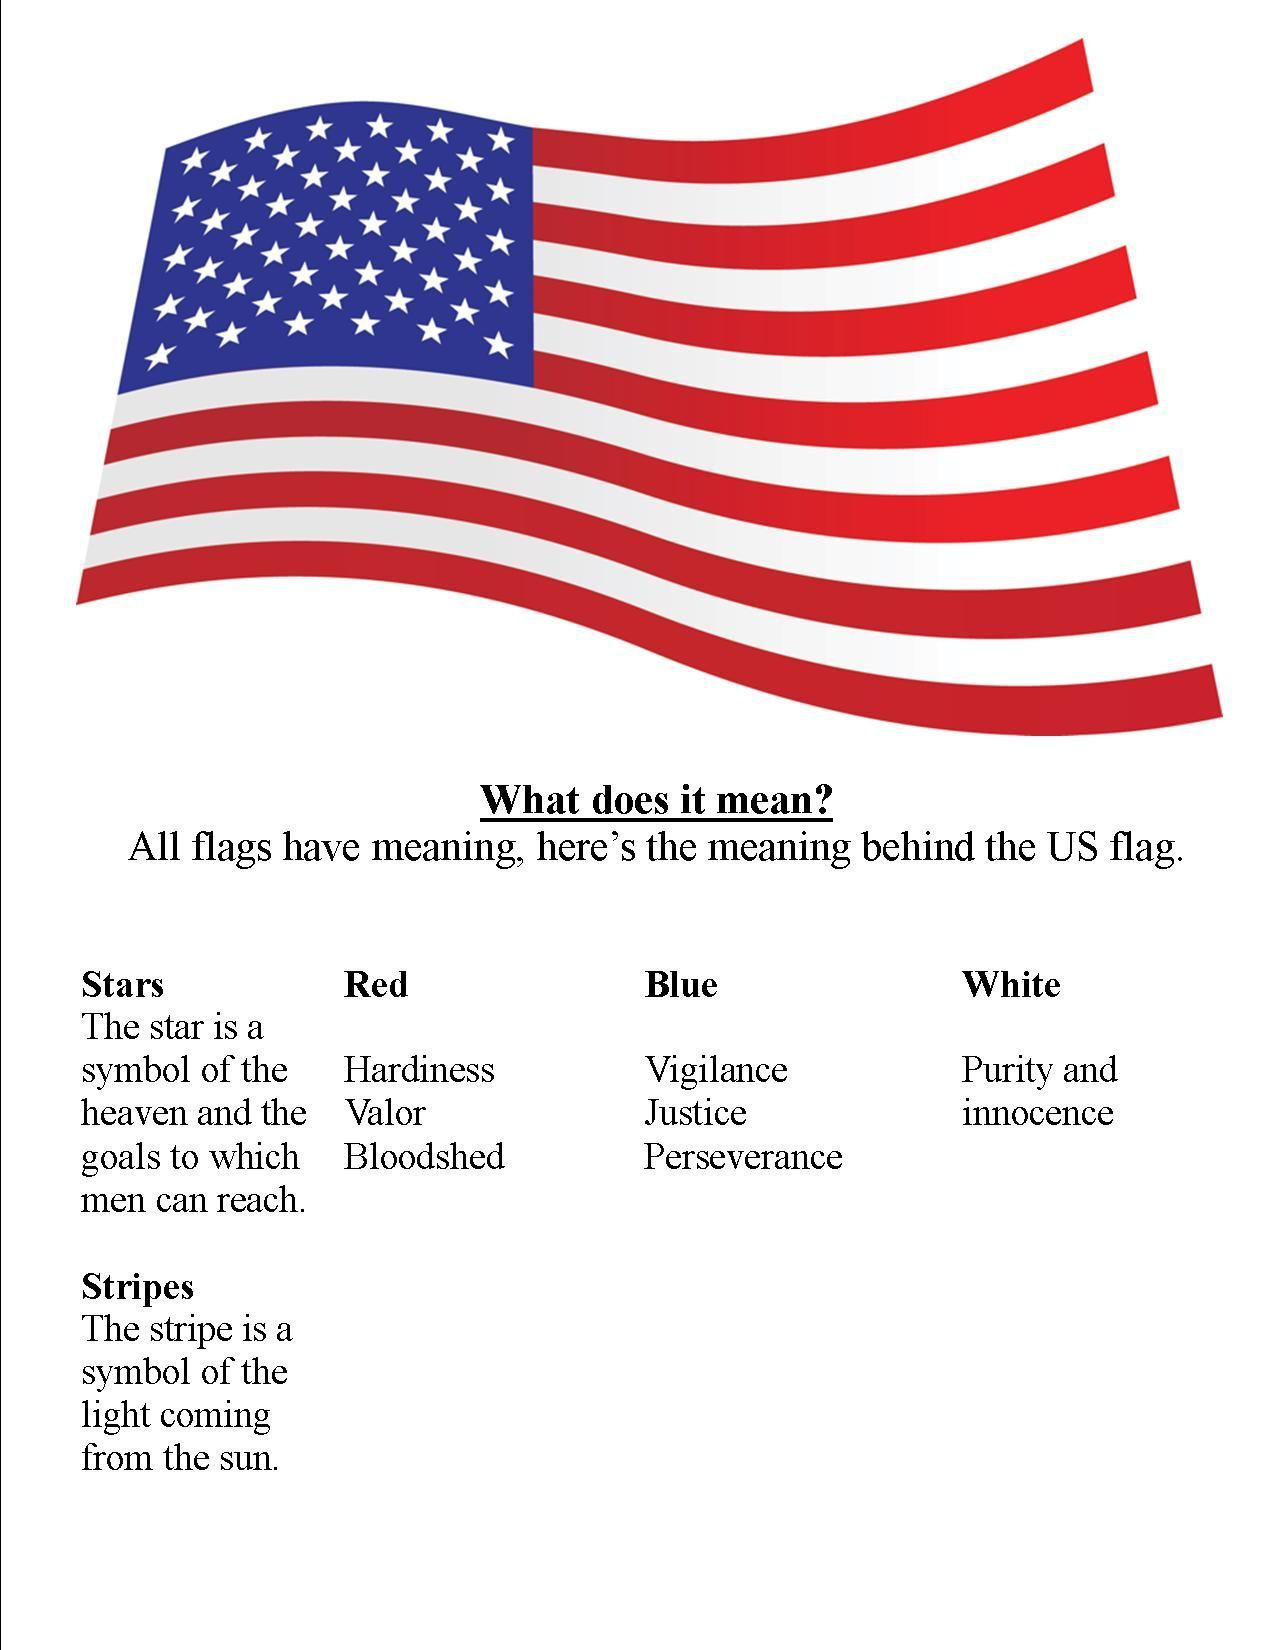 Colors Of Flags And What They Mean Flag Meaning Americanflag Colors Of Flags And What They Mean Flag Meaning In 2020 American Flag Meaning Usa Flag Images Flag